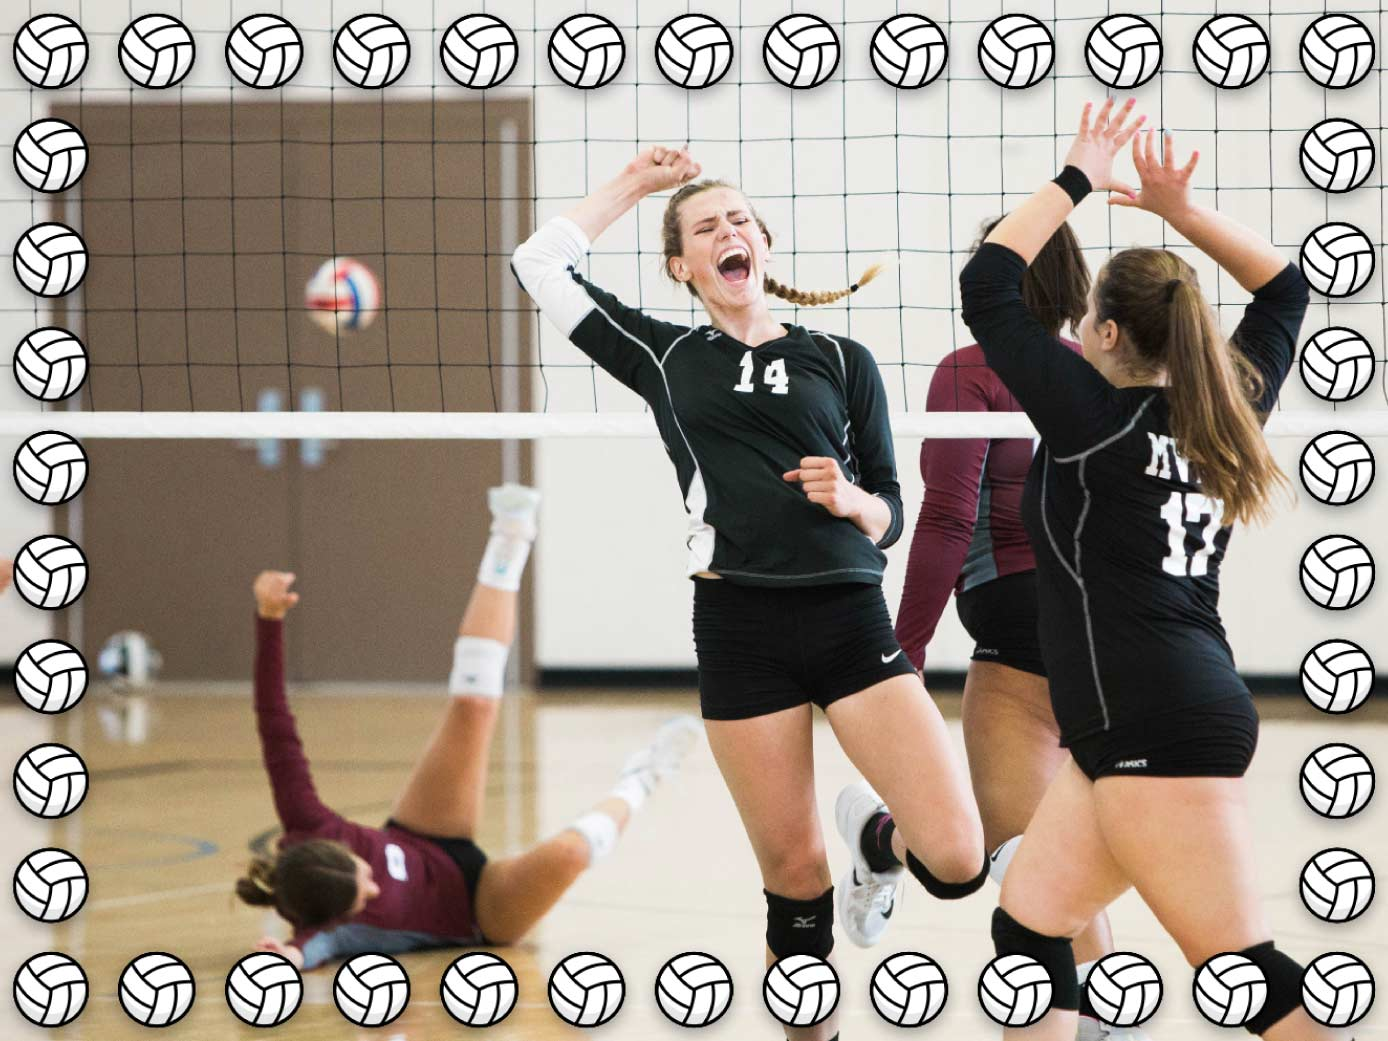 Volleyball frame available for Mac in ImageFramer